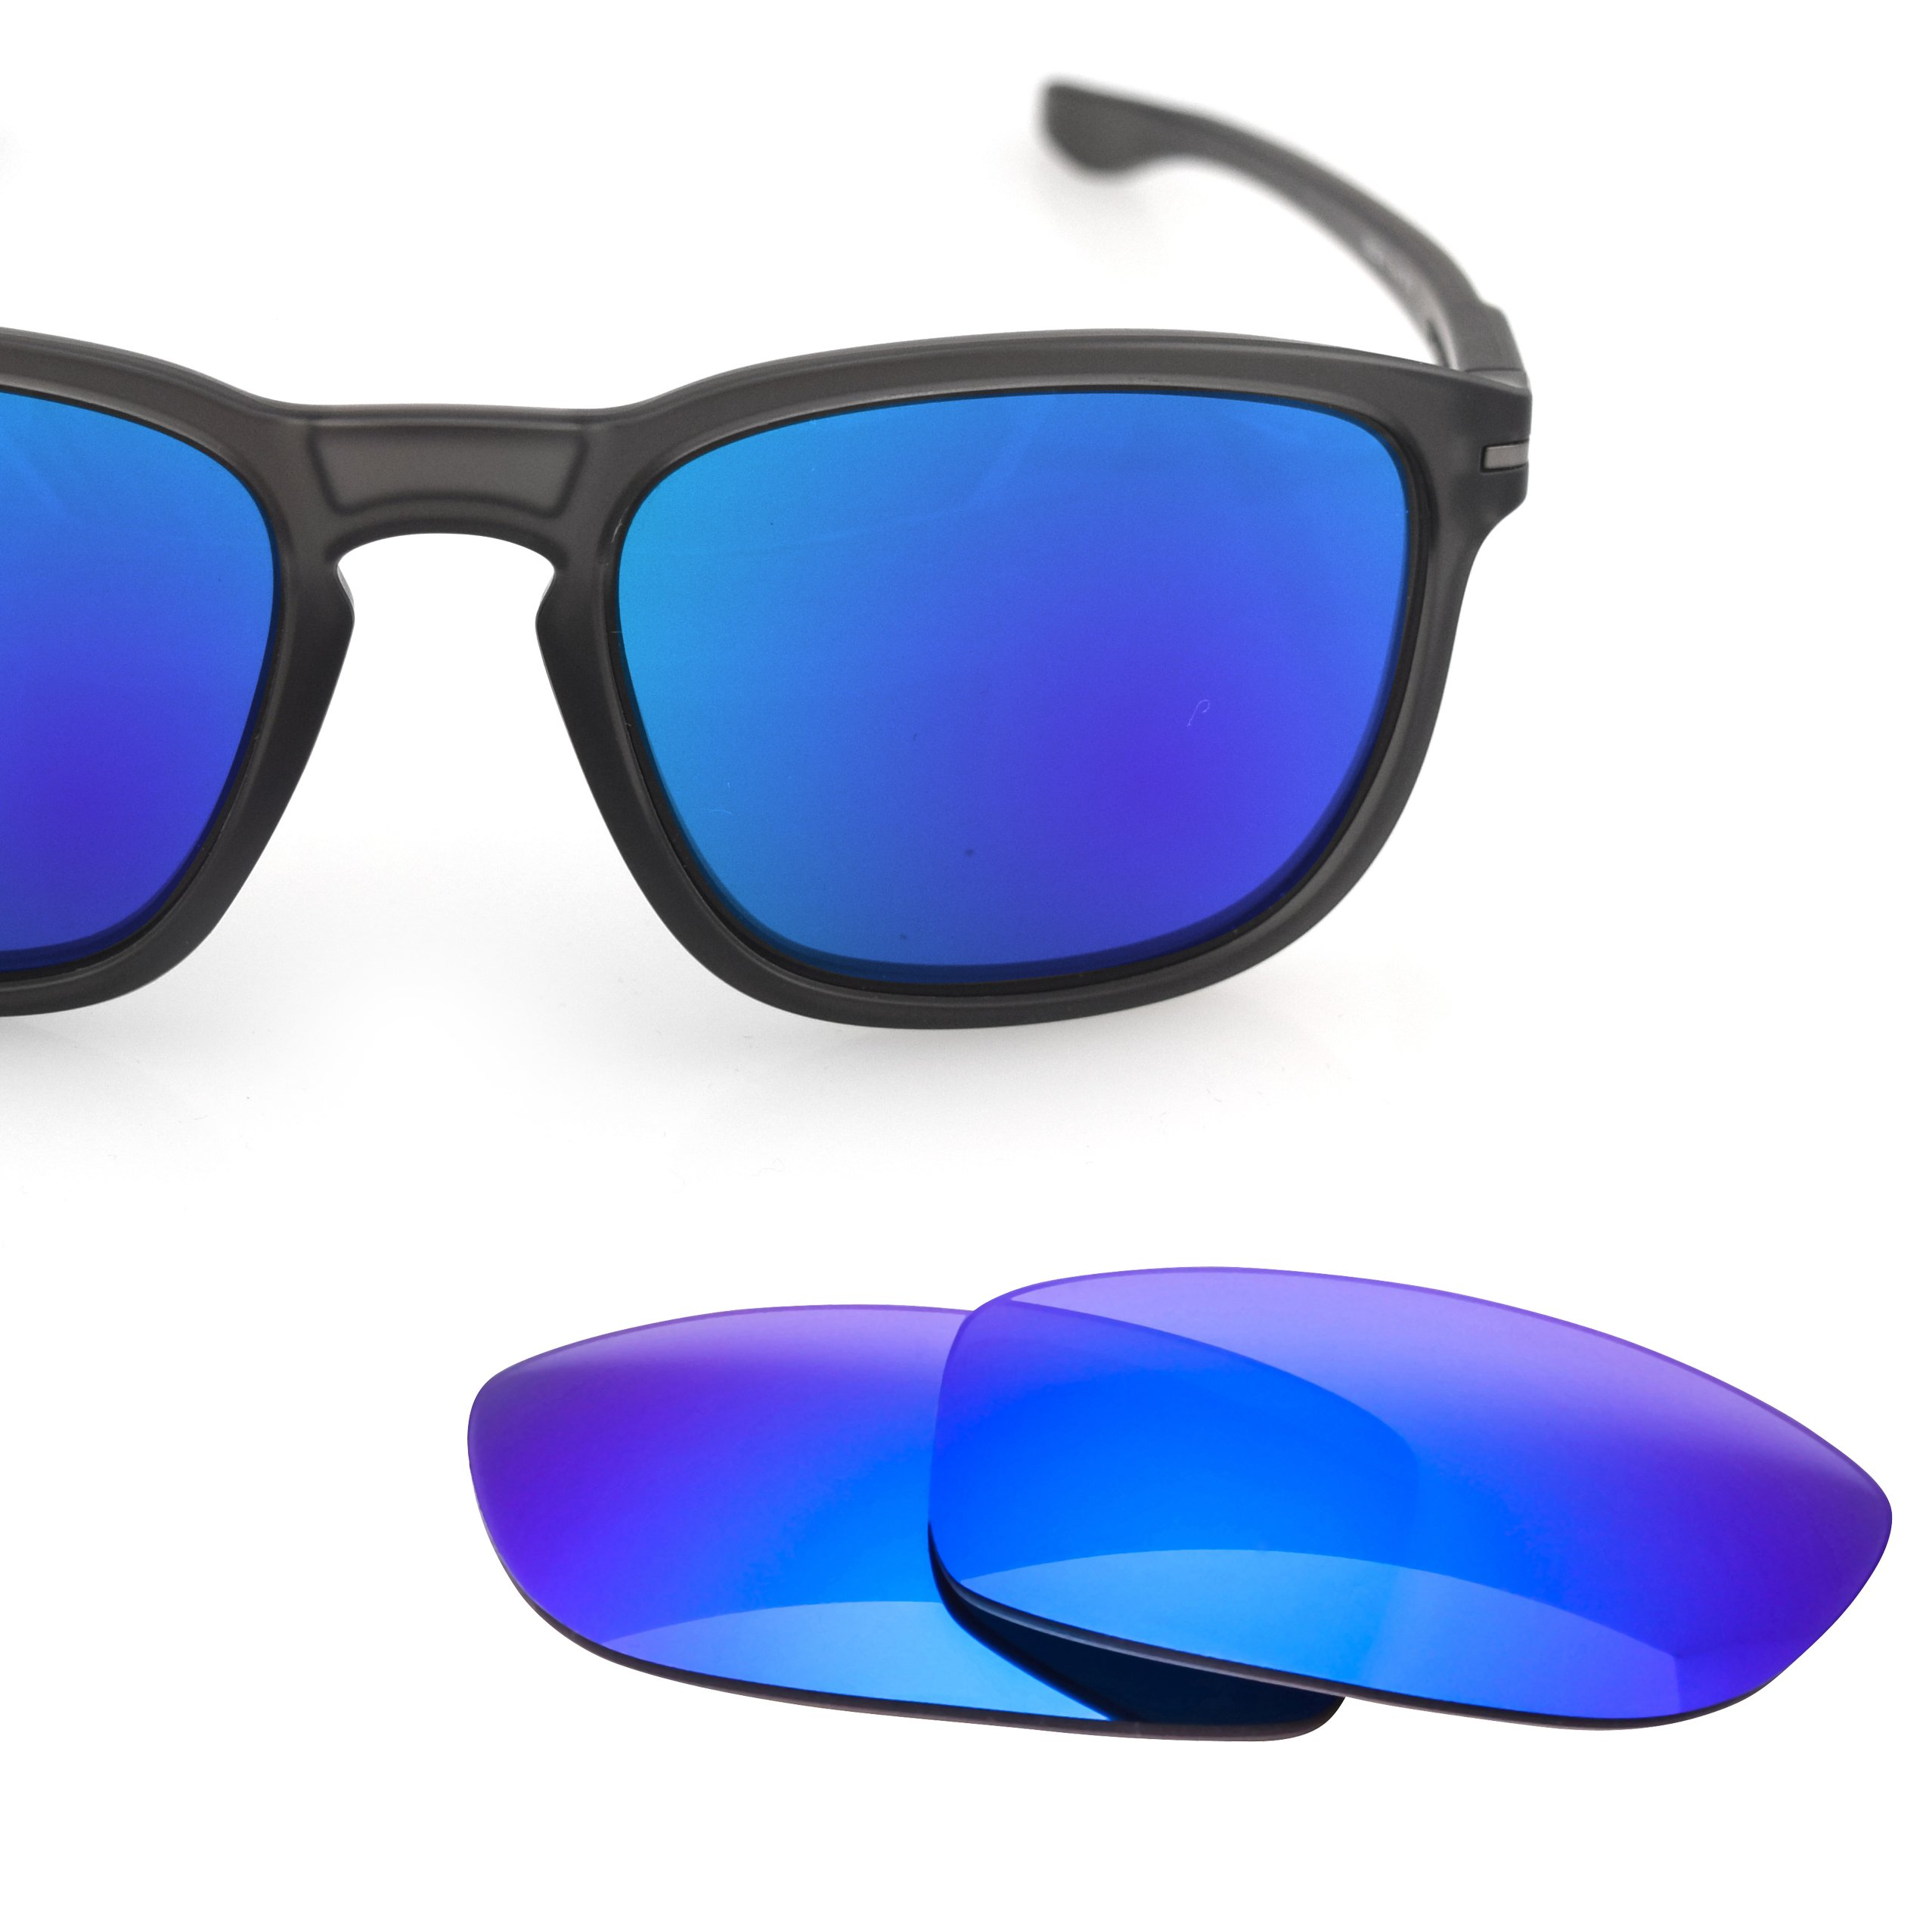 LenzFlip Replacement Lenses for Oakley ENDURO - Gray Polarized with BLUE Mirror Lens